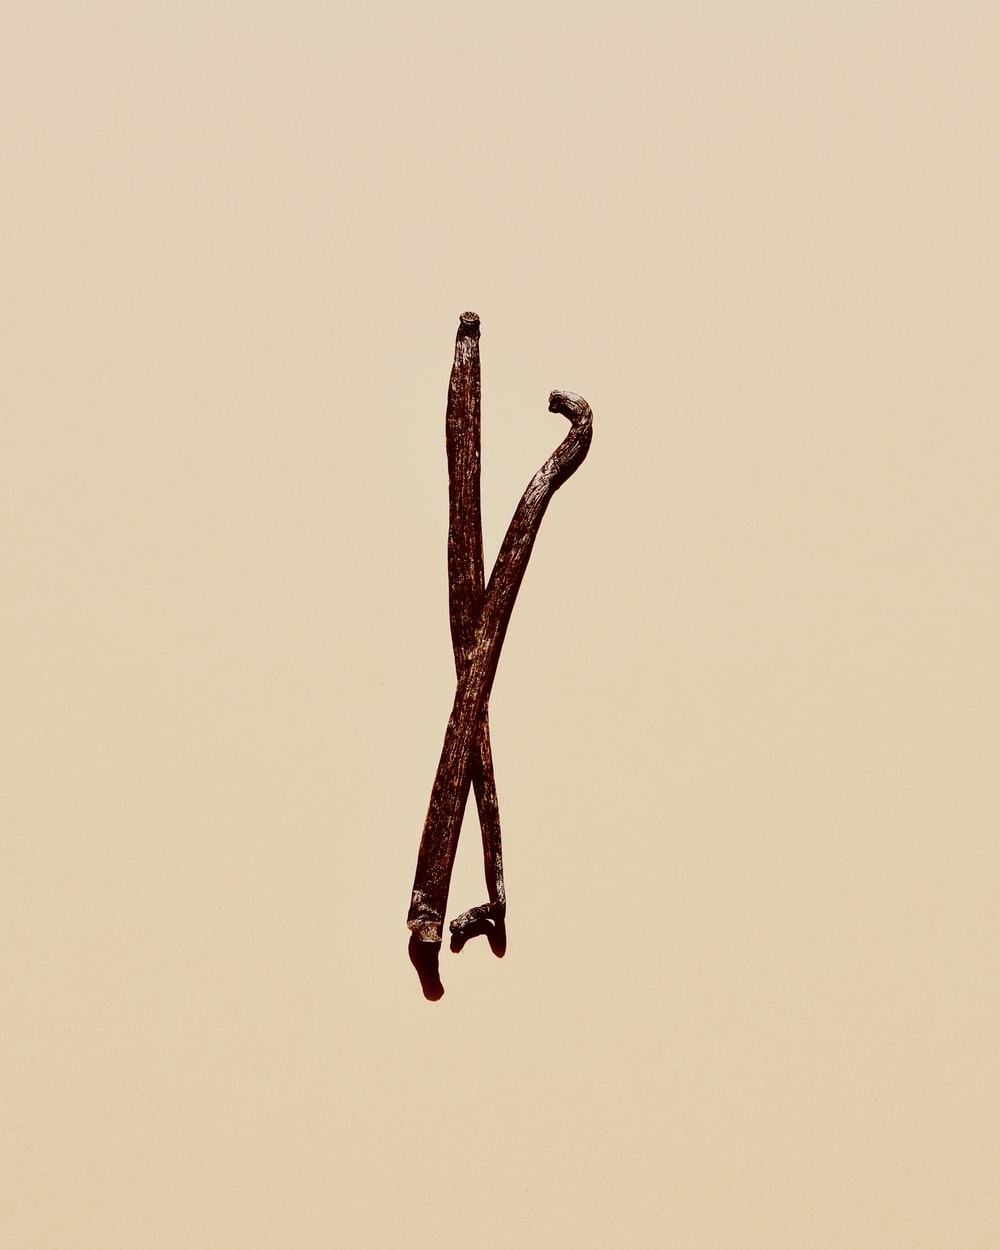 brown stick on yellow background